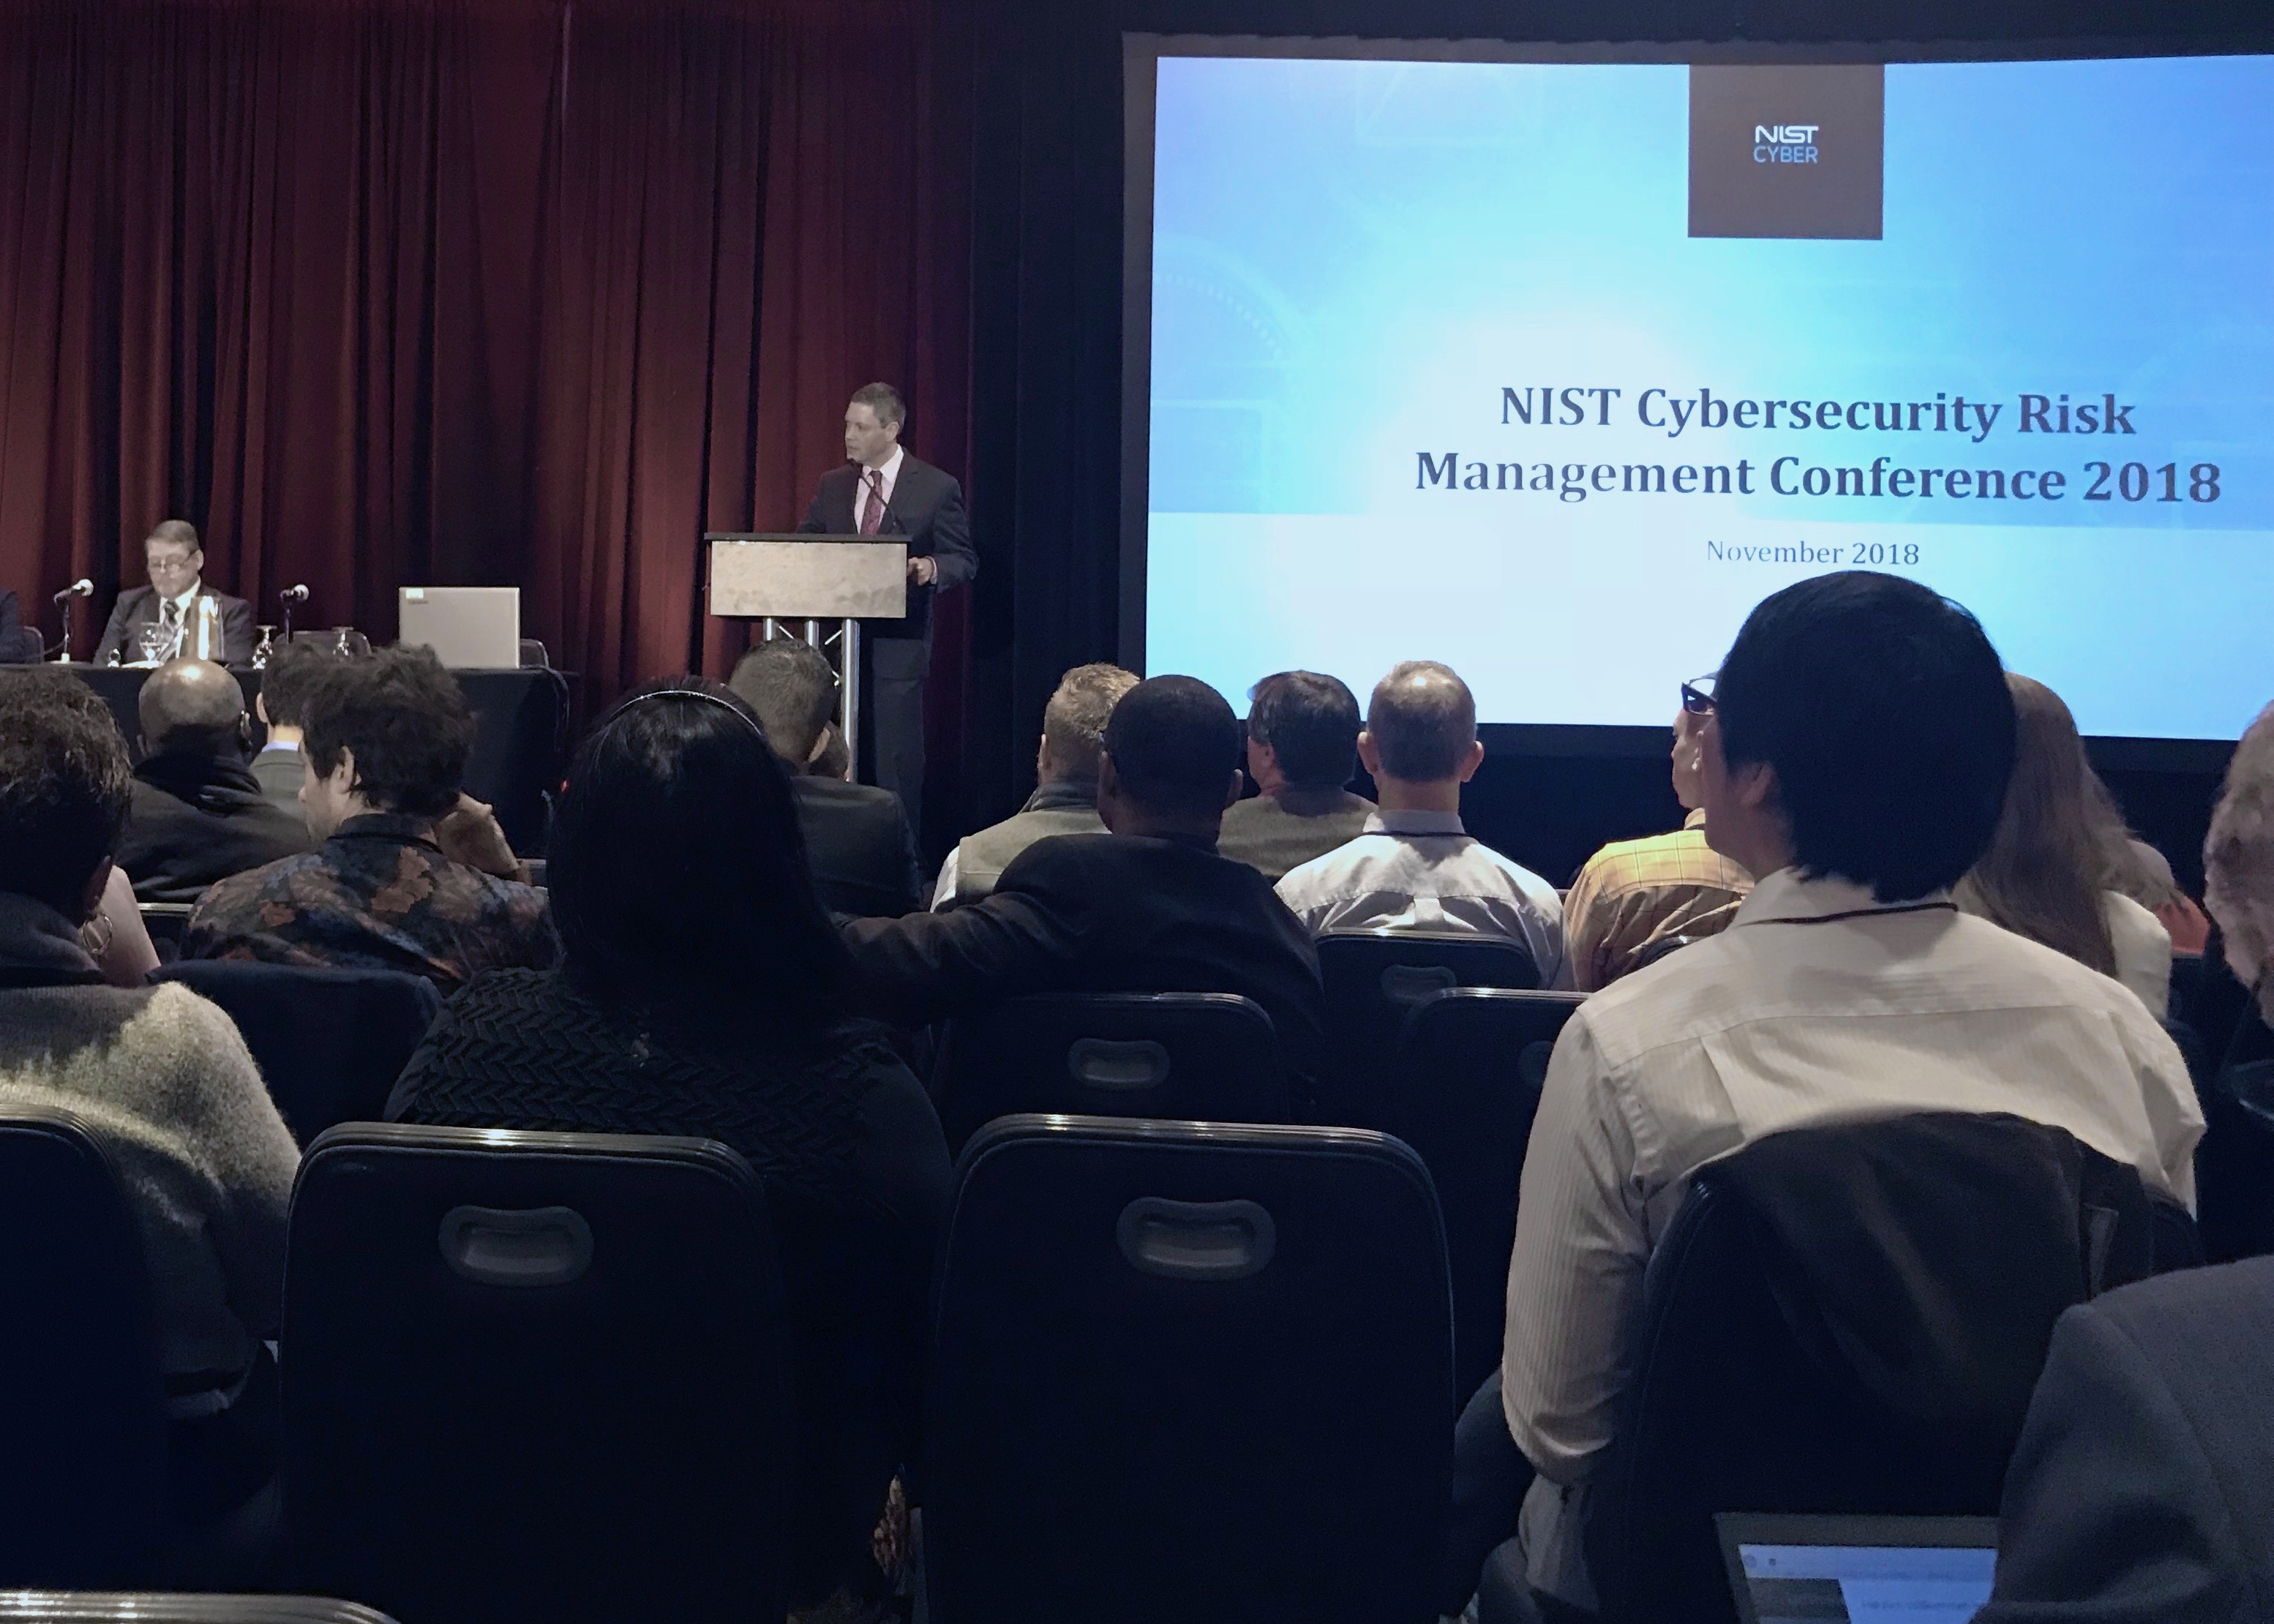 A Cybersecurity Analyst's view on the NIST CyberSecurity Conference